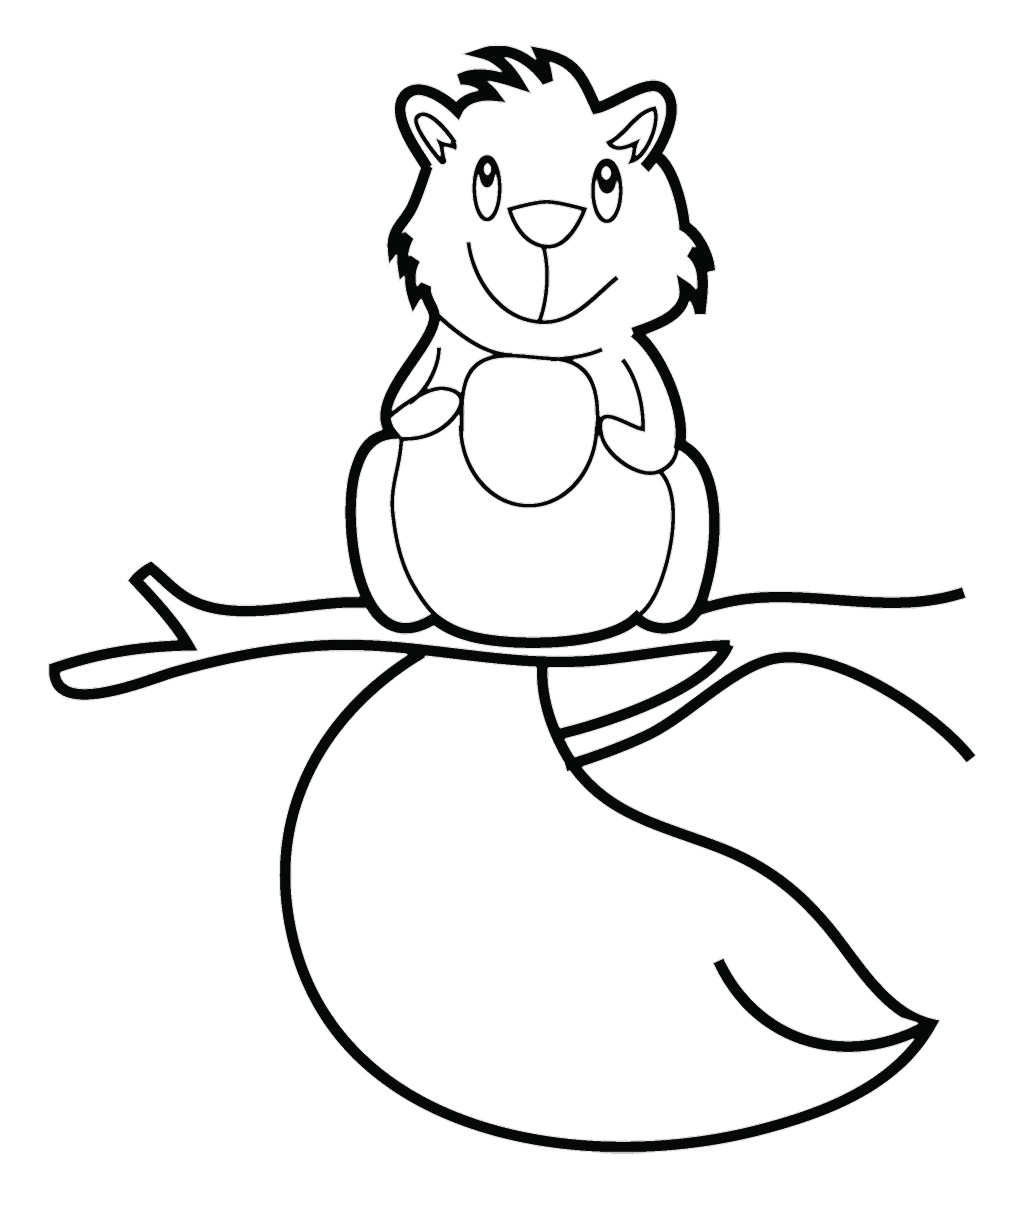 Squirrel Coloring Page Animal Coloring Pages Printable